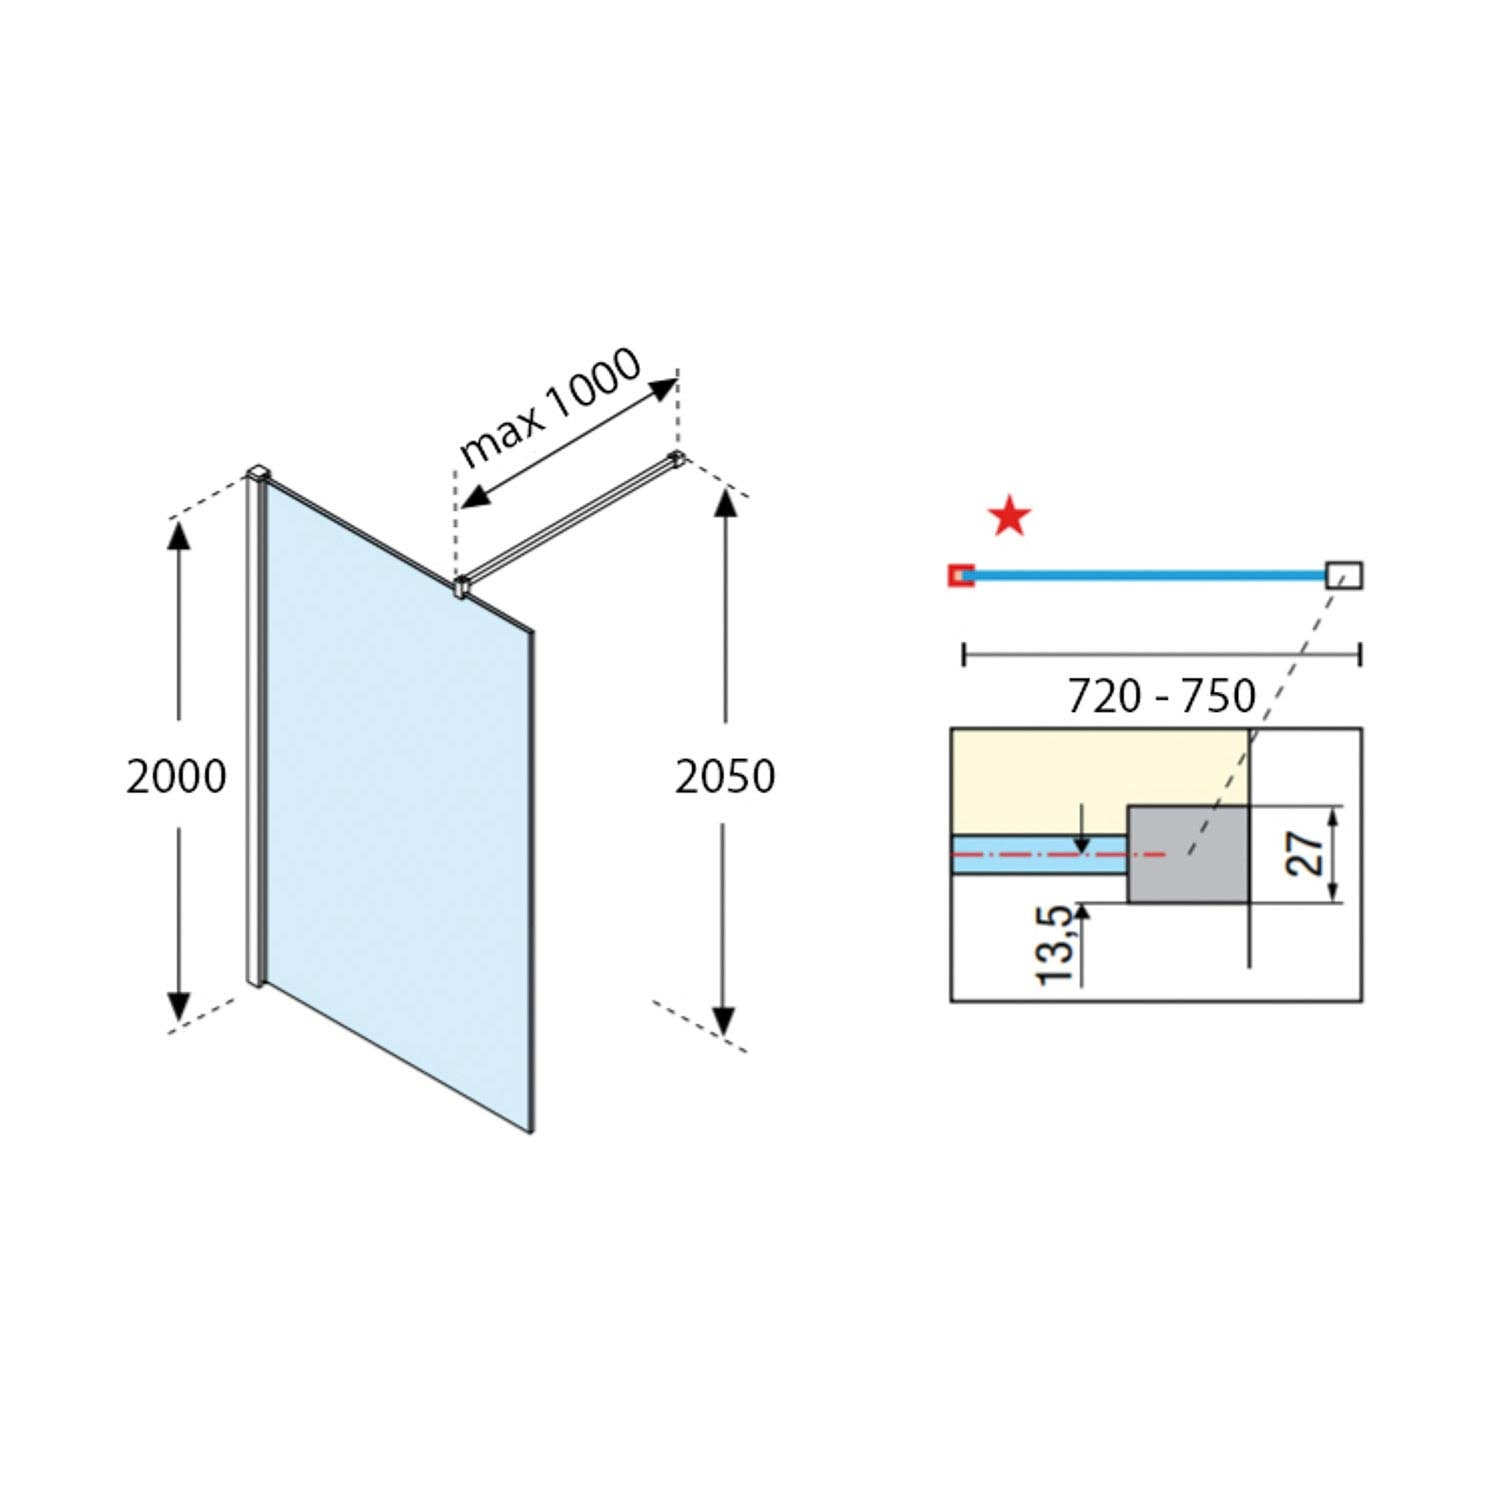 720-750mm Ergo Wet Room Screen Clear Glass with a chrome finish dimensional drawing